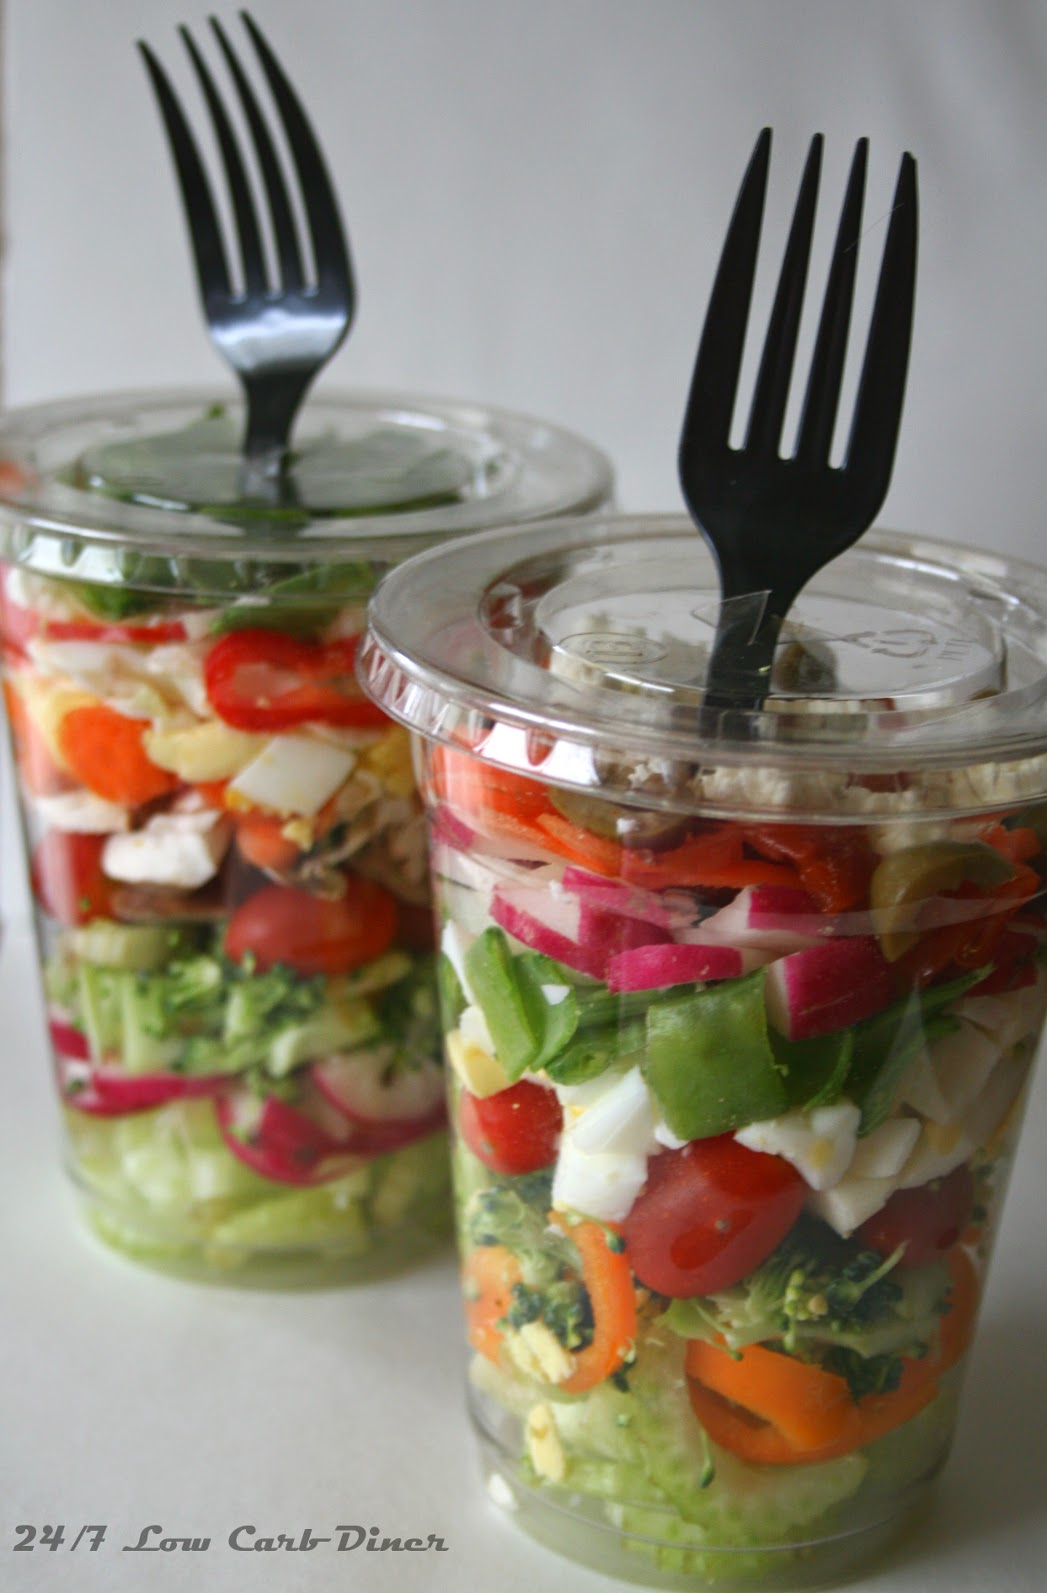 24 7 low carb diner chopped salad in a cup for Cuisine to go